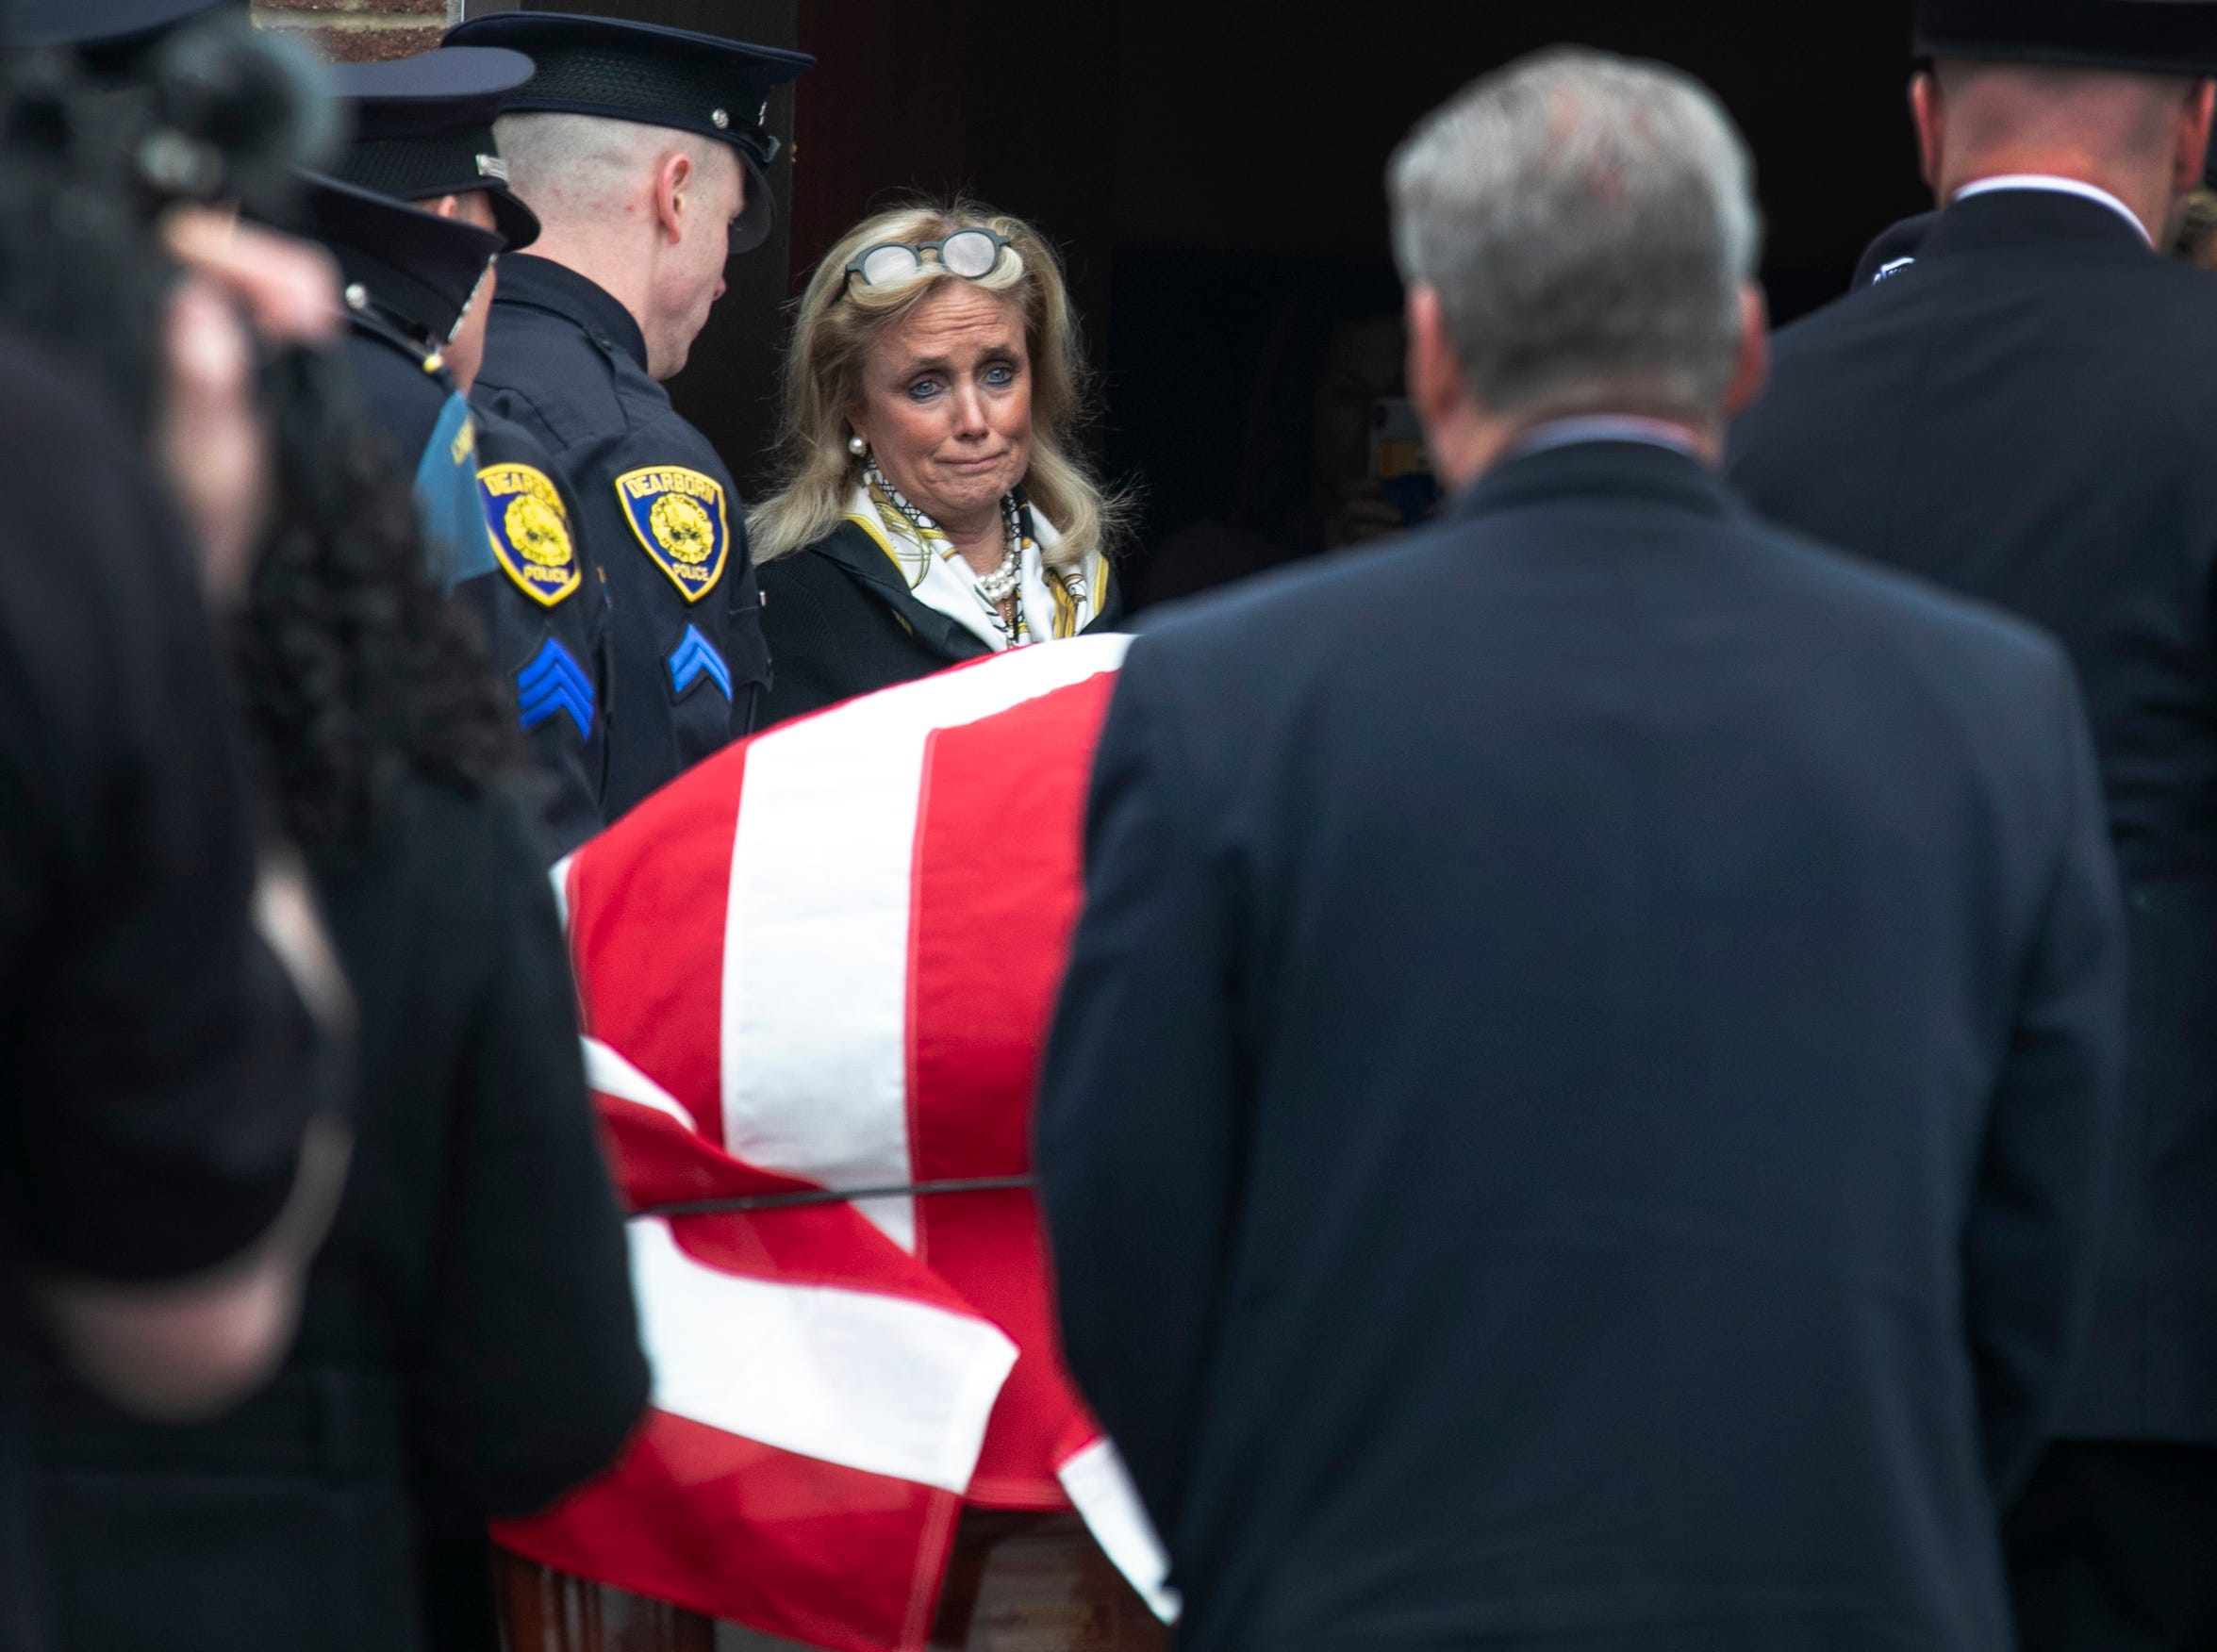 Congresswoman Debbie Dingell watches as the casket carrying her husband John Dingell is brought into the Michael A. Guido theater ahead of a visitation in Dearborn Monday, Feb. 11, 2019.